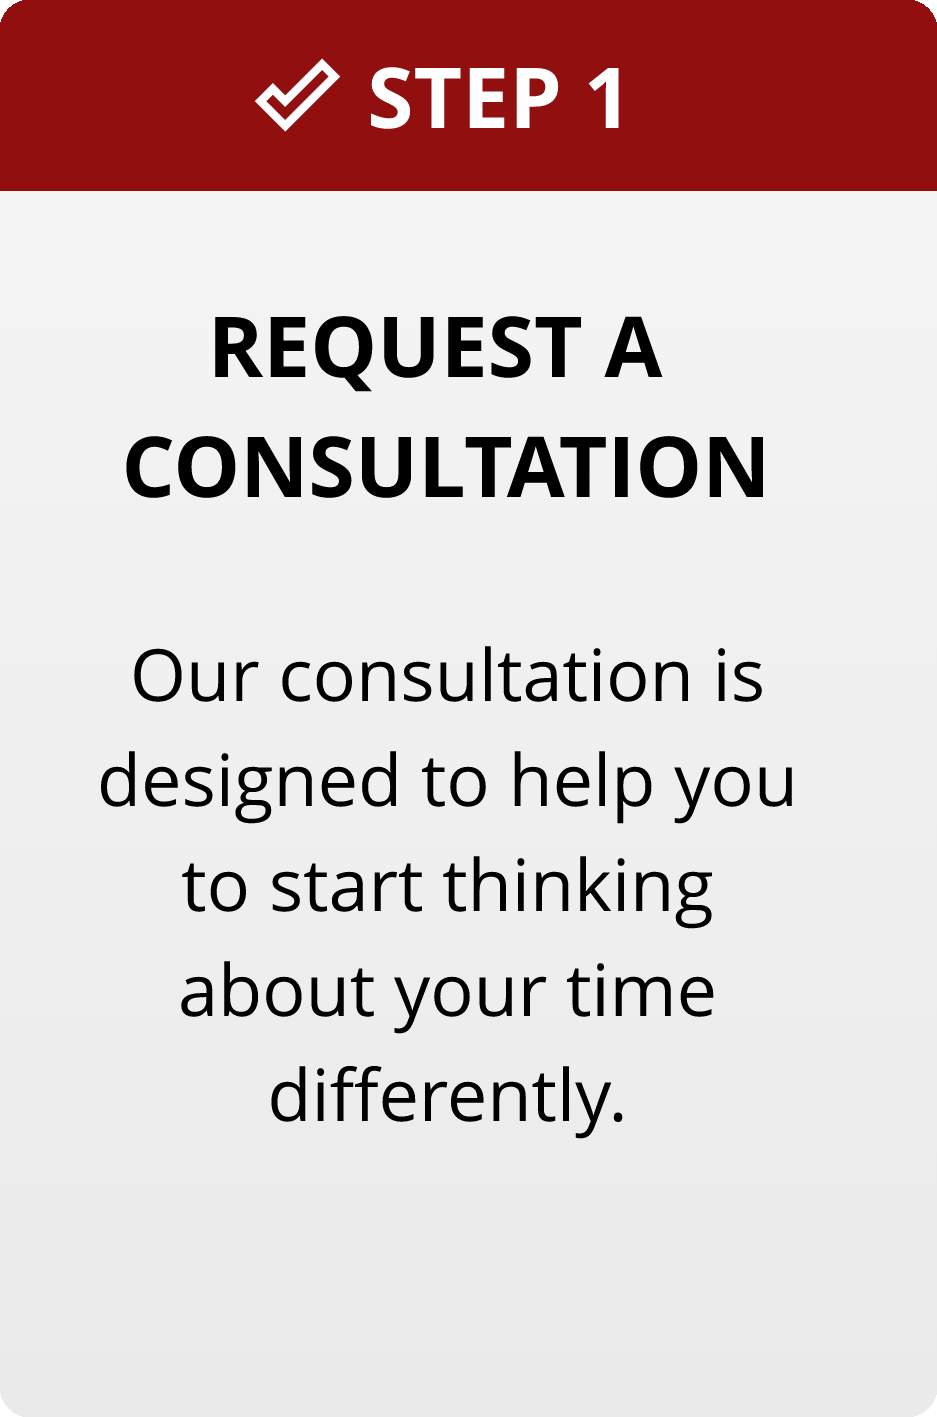 Step 1: Request a consultation. Our consultation is designed to help you start thinking about your time differently